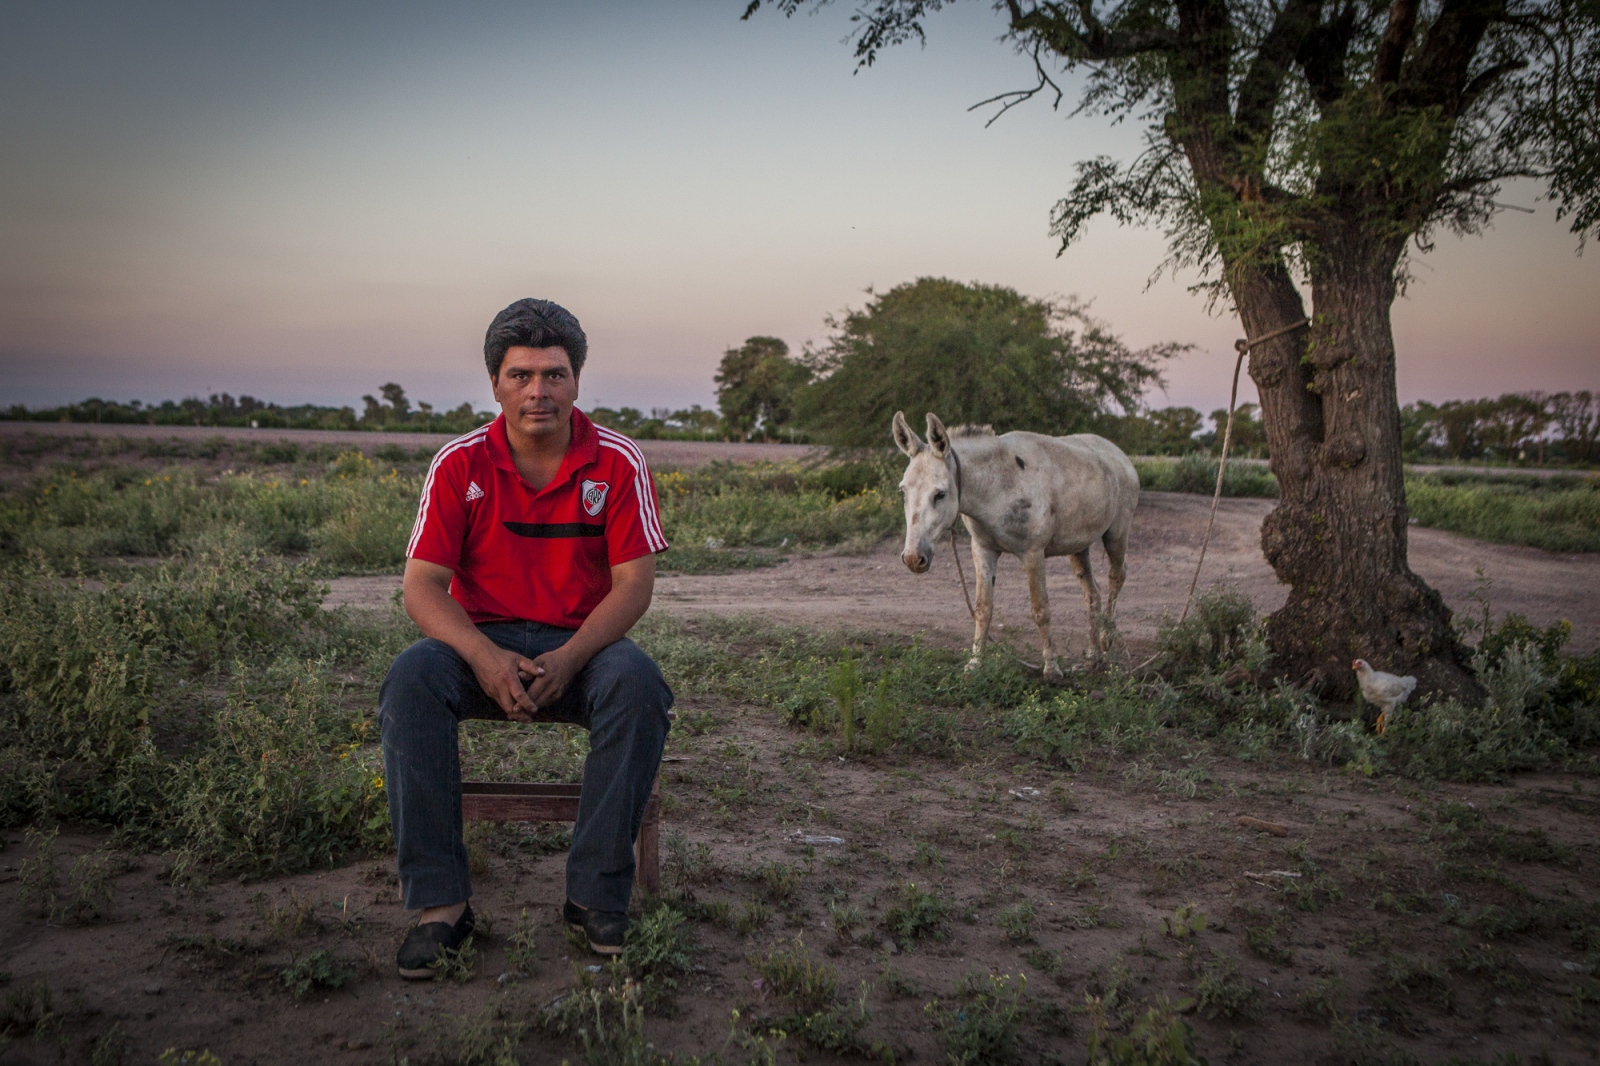 Santo Ramón Gonzales (35), sits on his backyard. He complains that soy producers are doing everything they can to expel his community out of their land. He says they use many different tactics like: pulverize their homes, fields and animals with glyphosate, threatening them with weapons and even claim with fake paperwork that they own the land. The indigenous people in the area are being threaten by soy producers that see their land as an opportunity to grow more of the crop. On the otherhand indigenous defend a sustainable agriculture and to live in harmony with the nature.